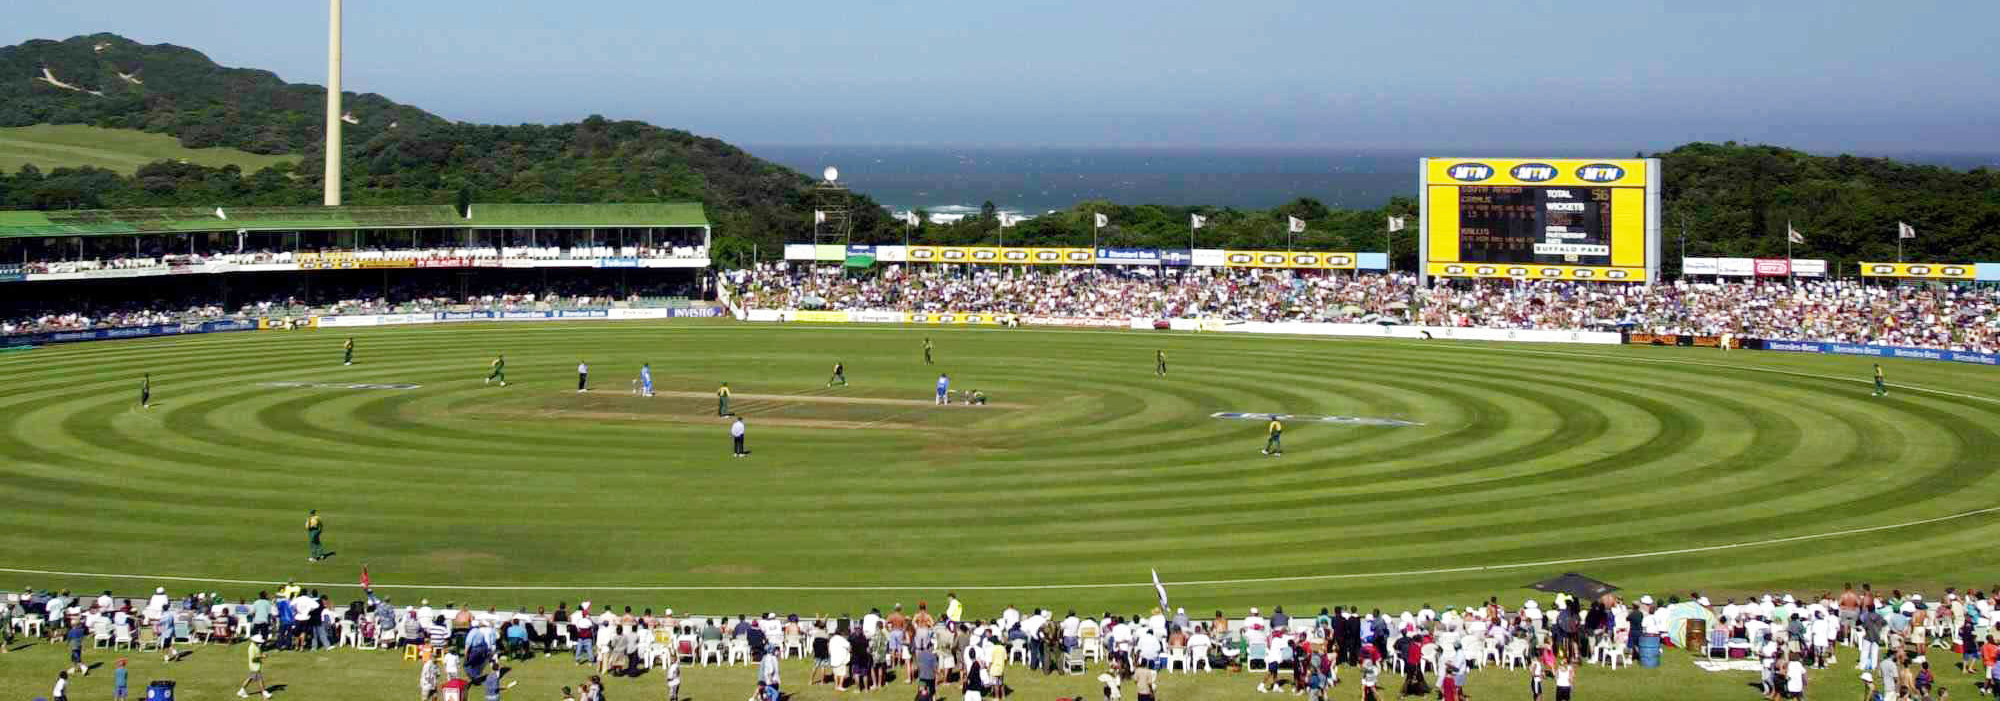 Sports Venues & Book Football Grounds